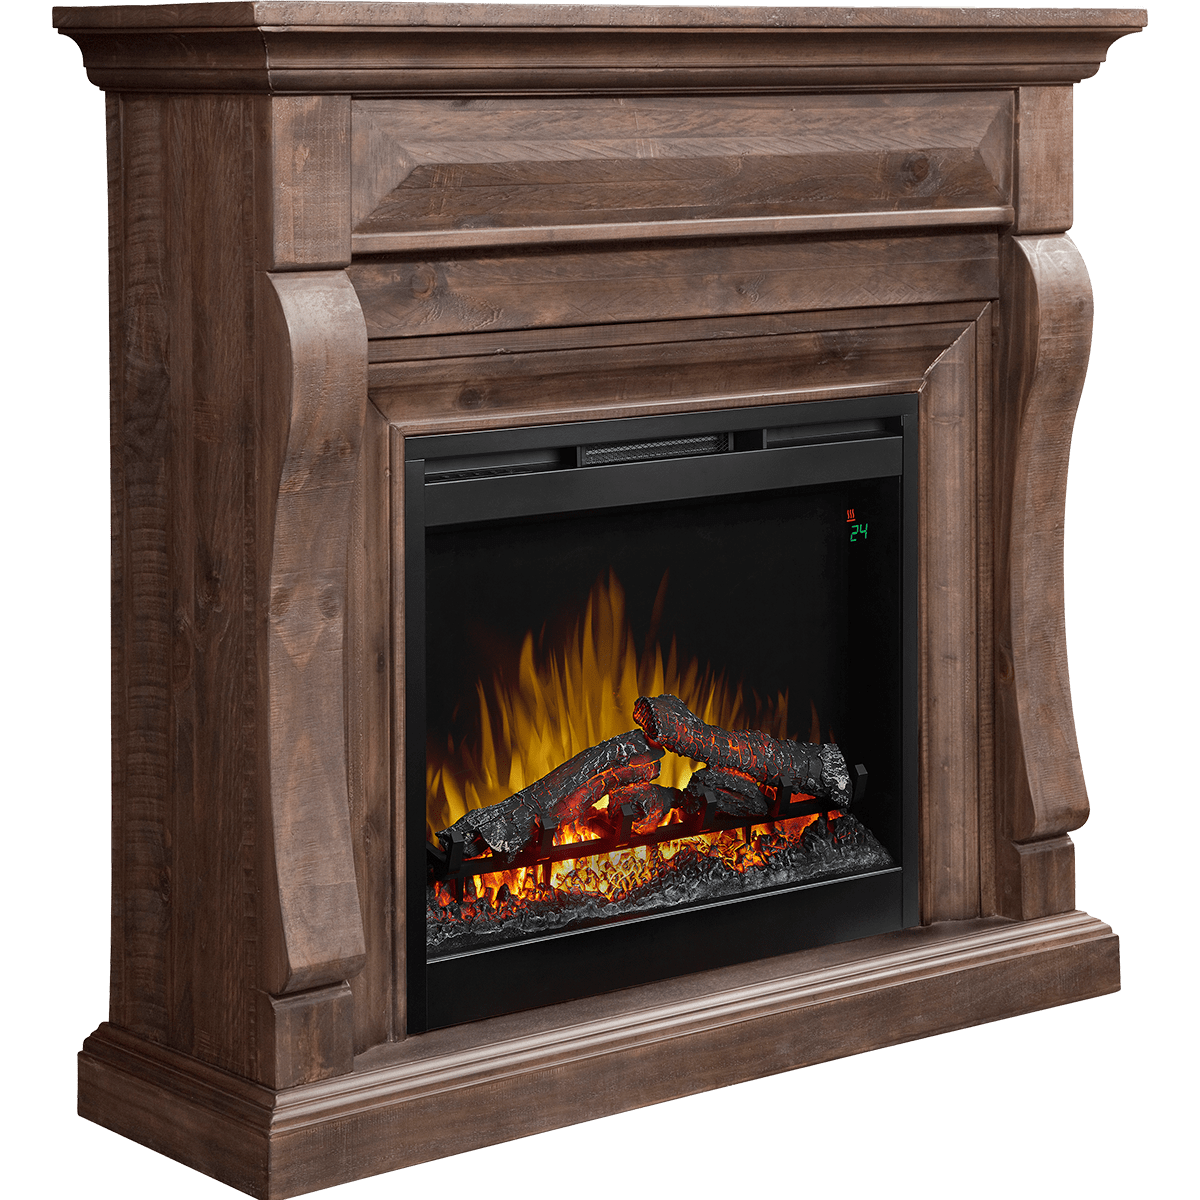 Dimplex Samuel Electric Fireplace Sylvane Garage Heaters With Thermostat 1